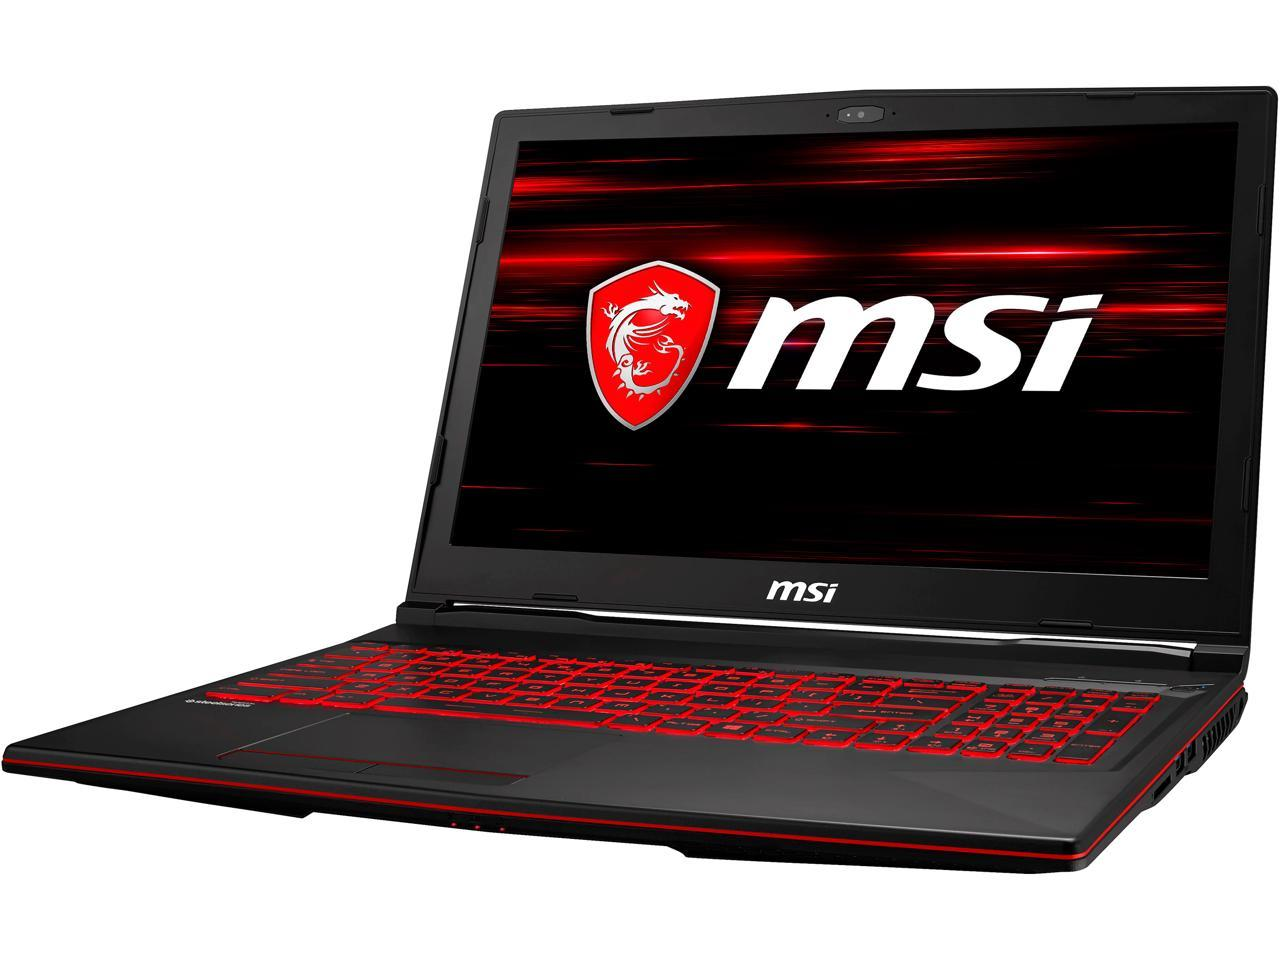 "MSI 15.6"" Gaming Laptop i7-8750H / 16GB / 1TB HDD & 128GB SSD) Bundle"